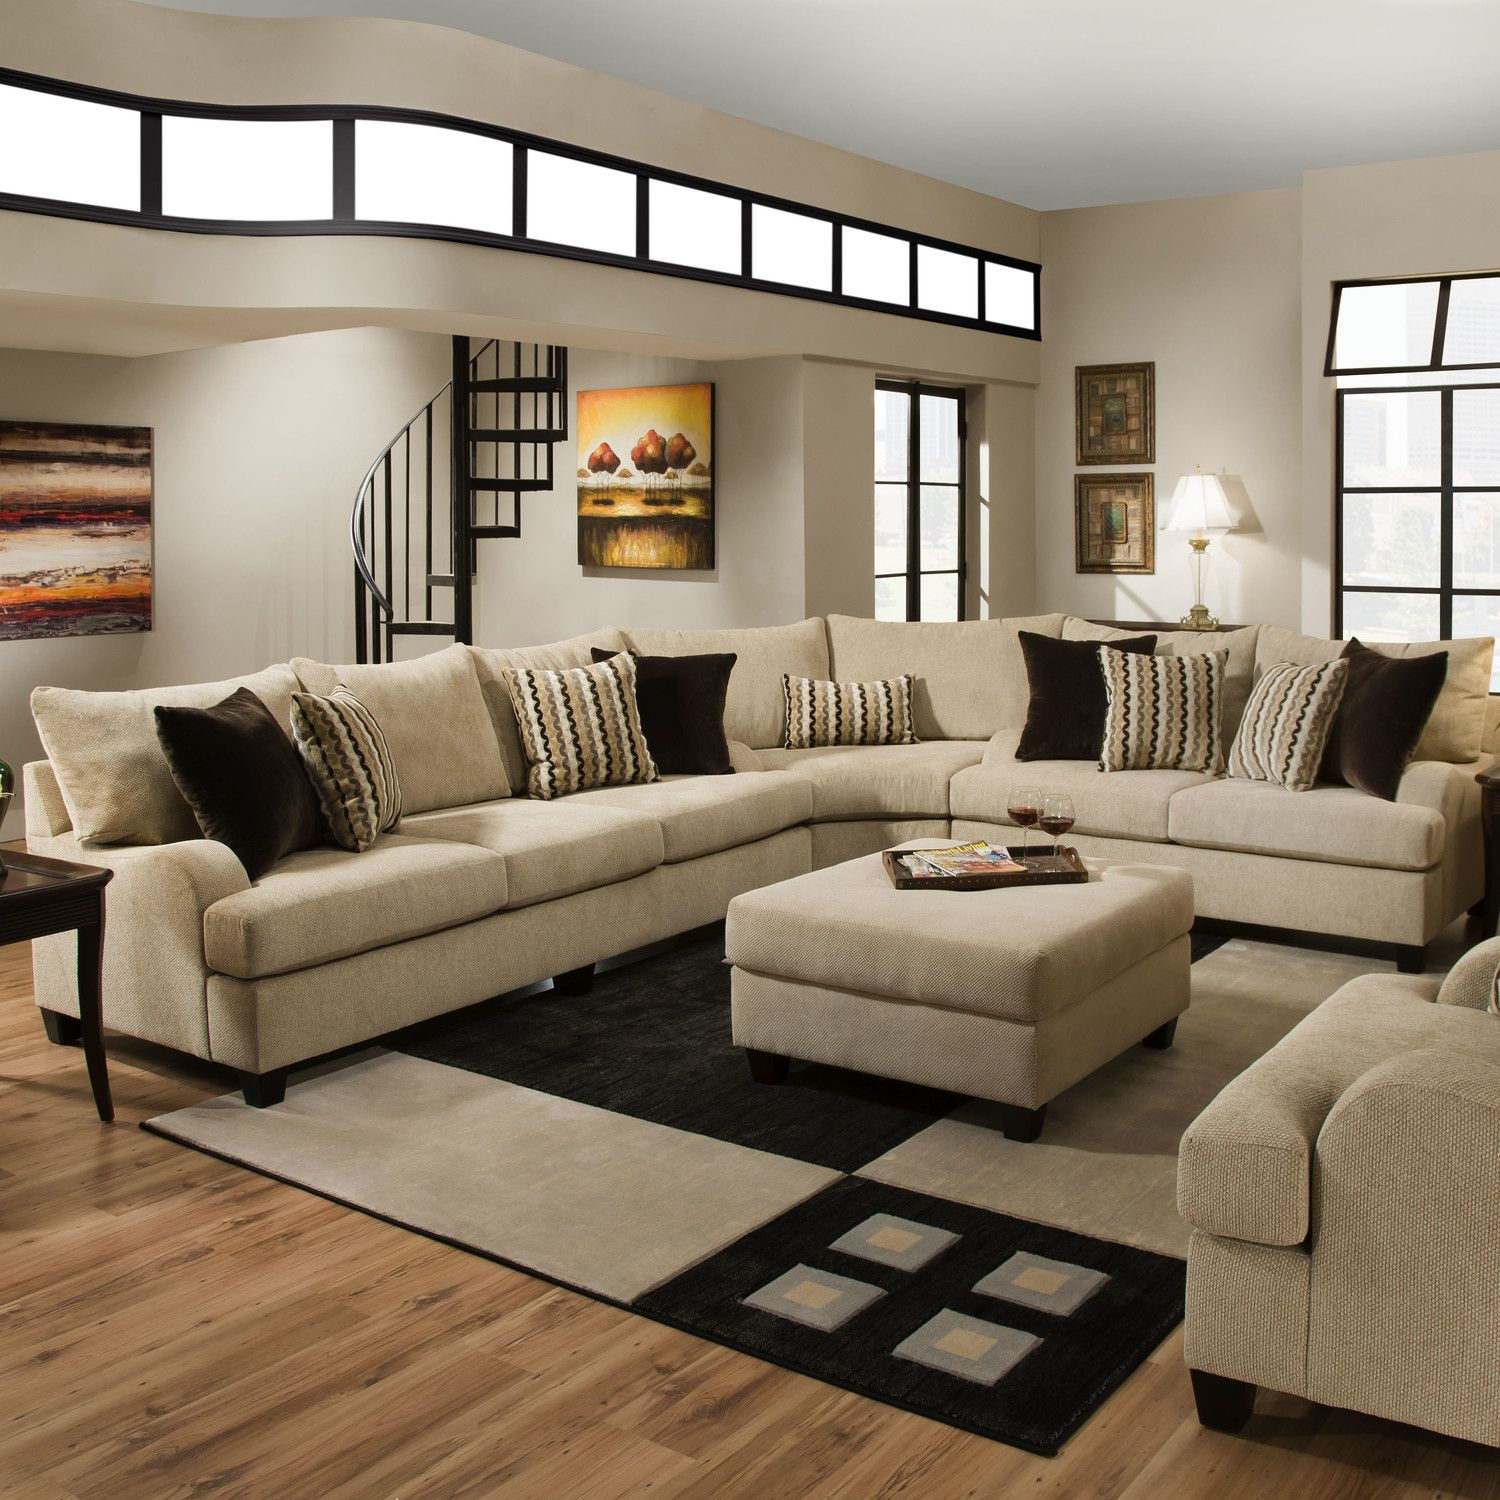 simmons living room furniture. Simmons Upholstery Trinidad Sectional · House FurnitureLiving Room Living Furniture A